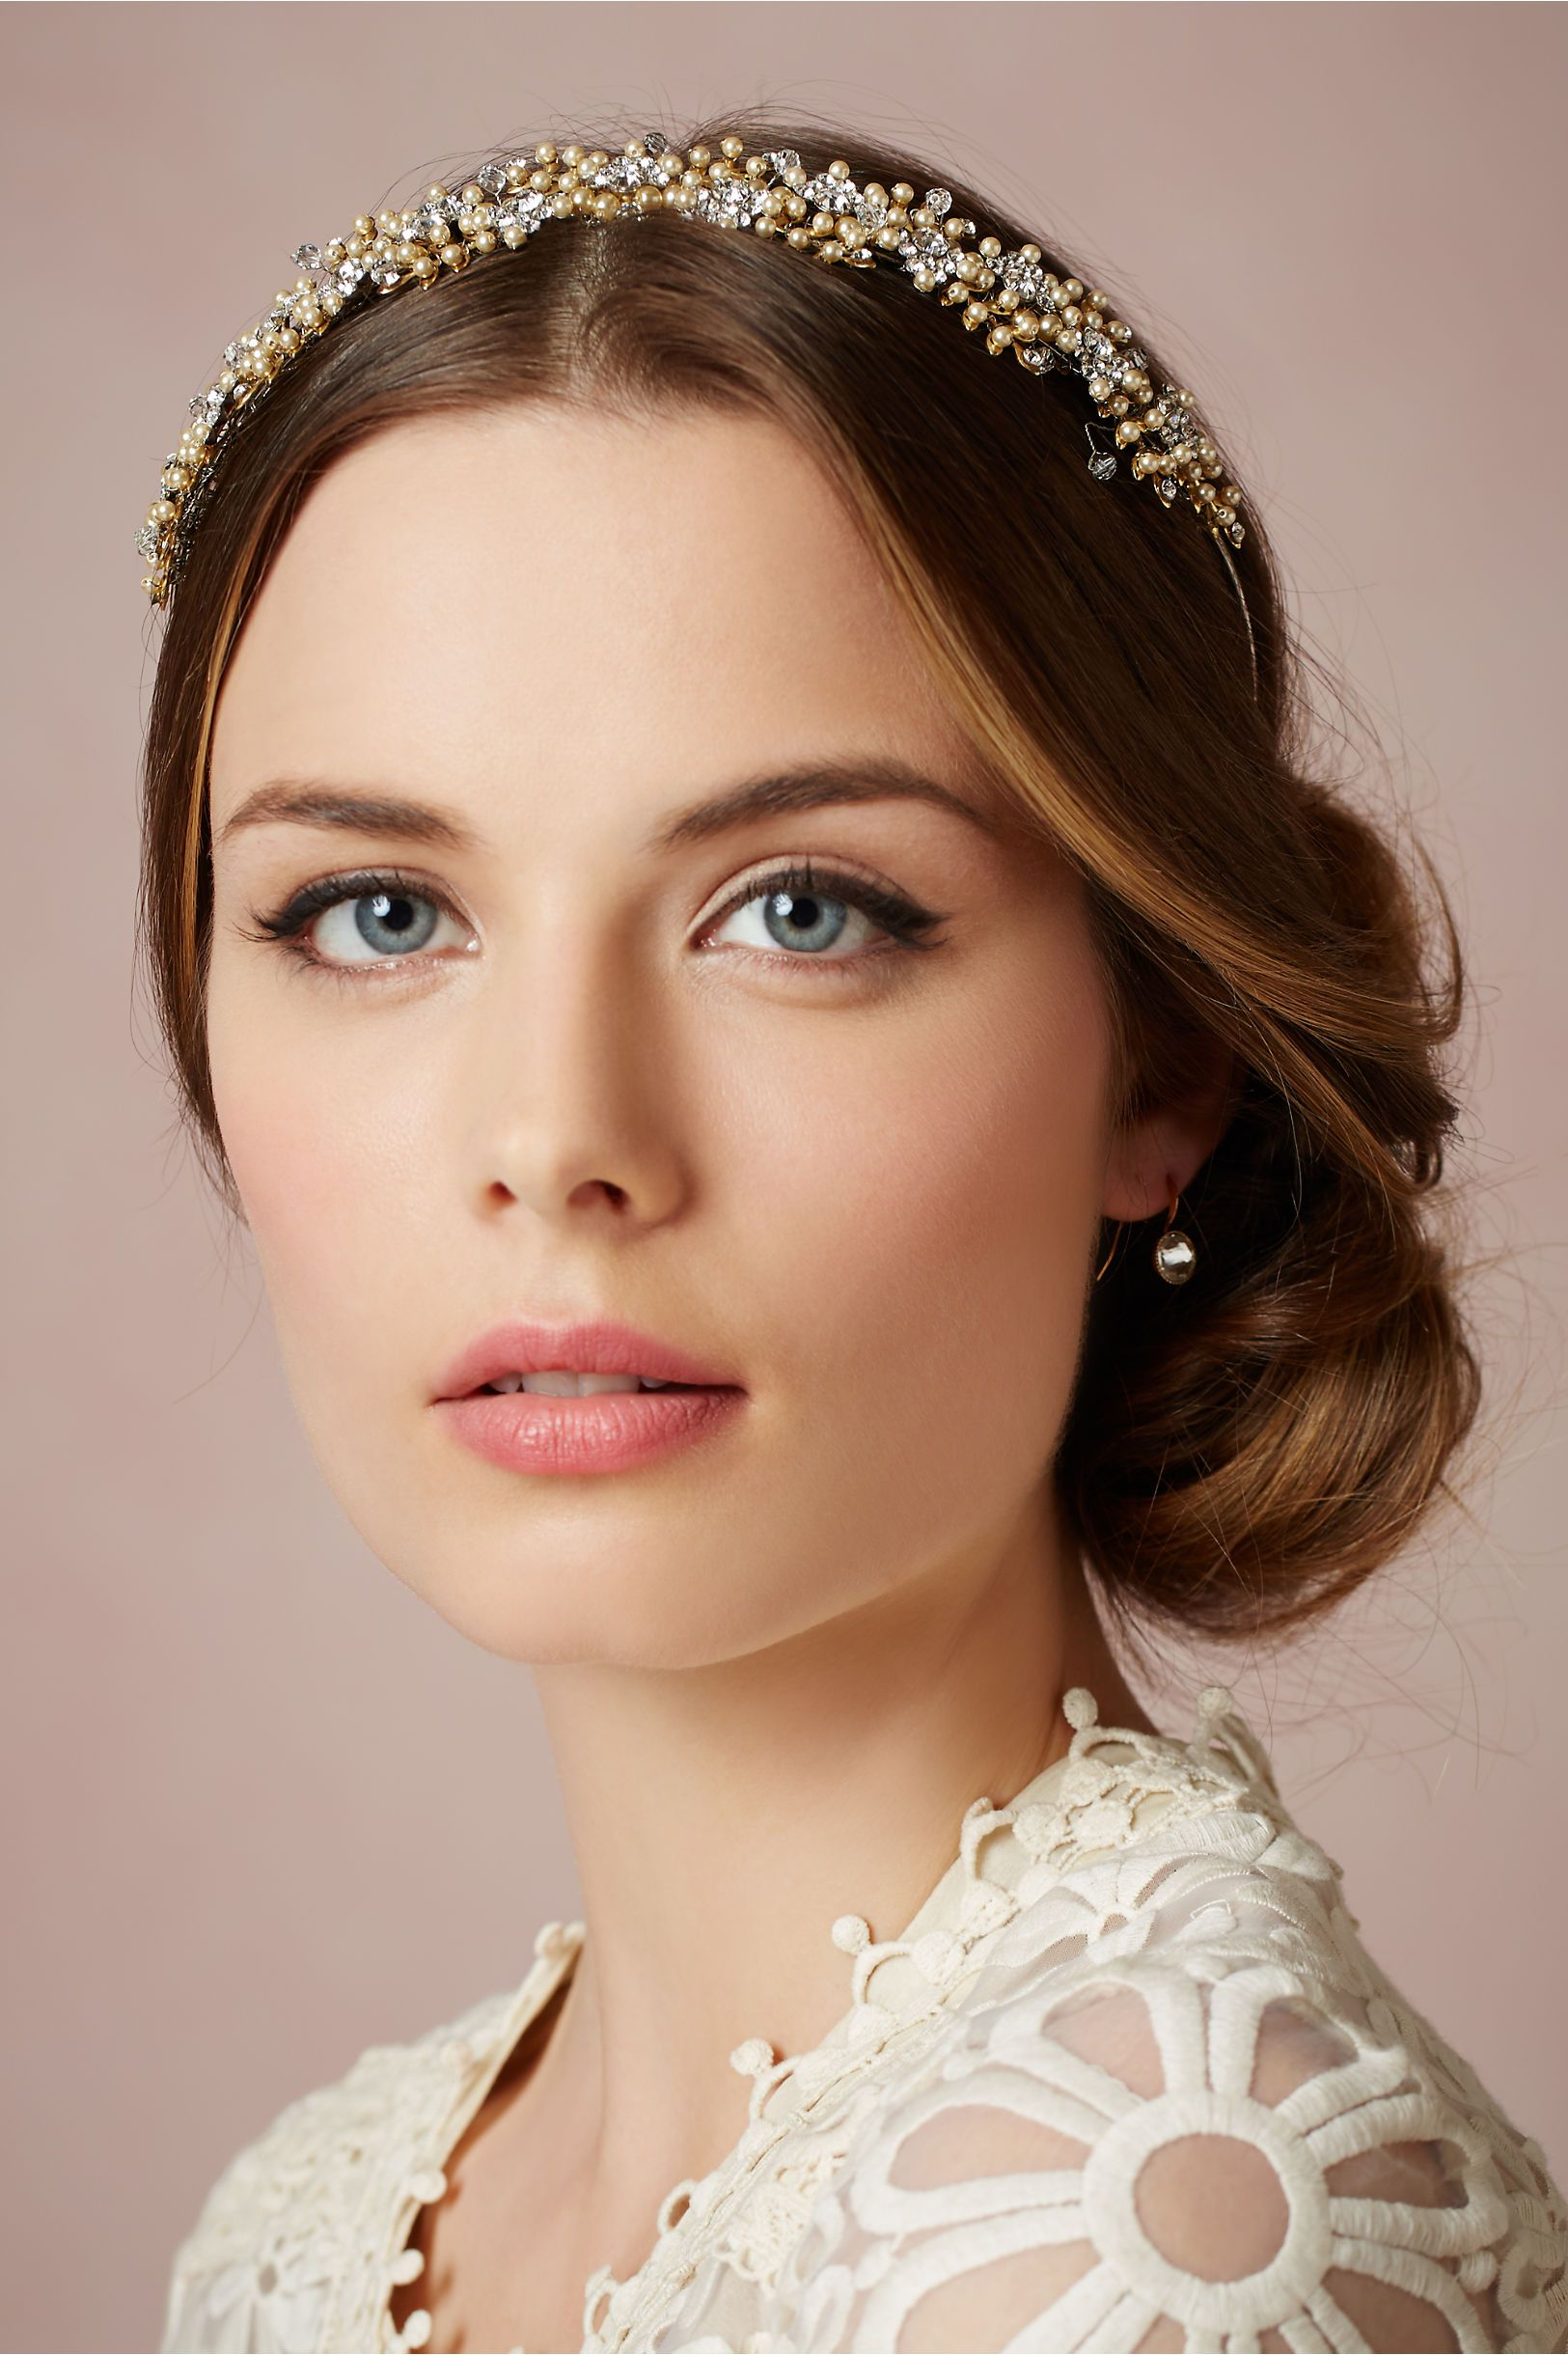 Jovian headband in shoes u accessories headpieces at bhldn makeup